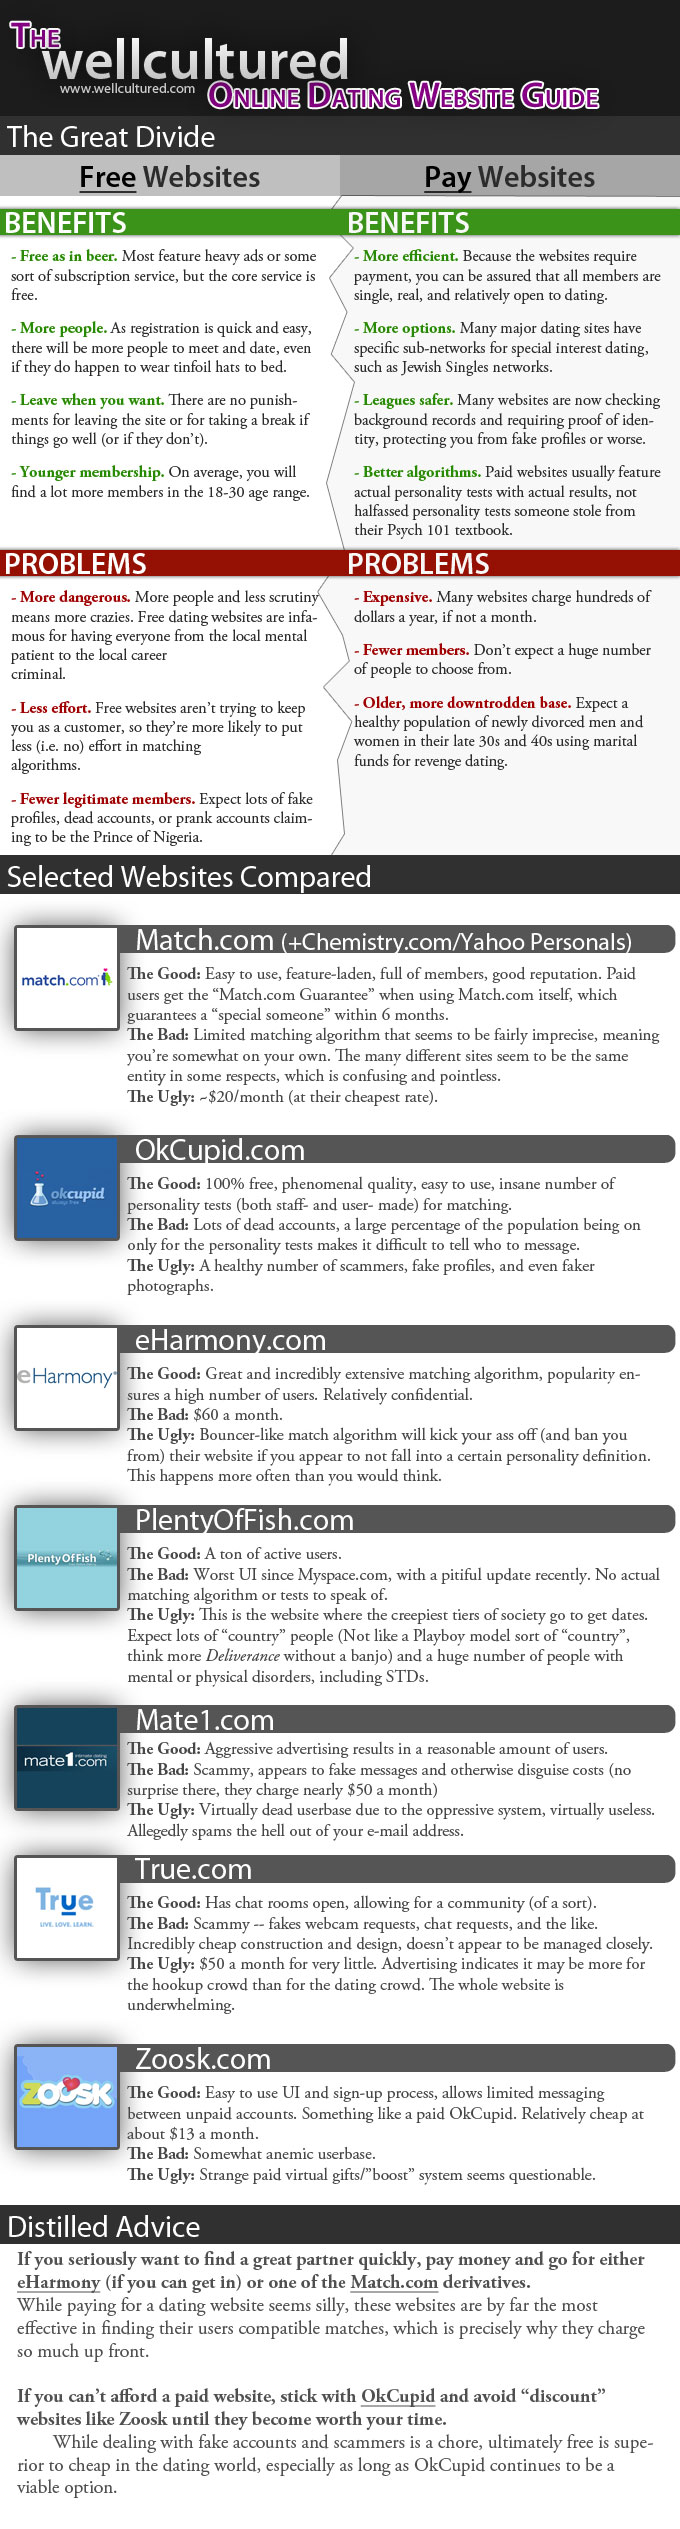 chemistry dating websites Comparison of online dating websites this is a partial, non-exhaustive list of online dating websites online dating services name description/focus registered.